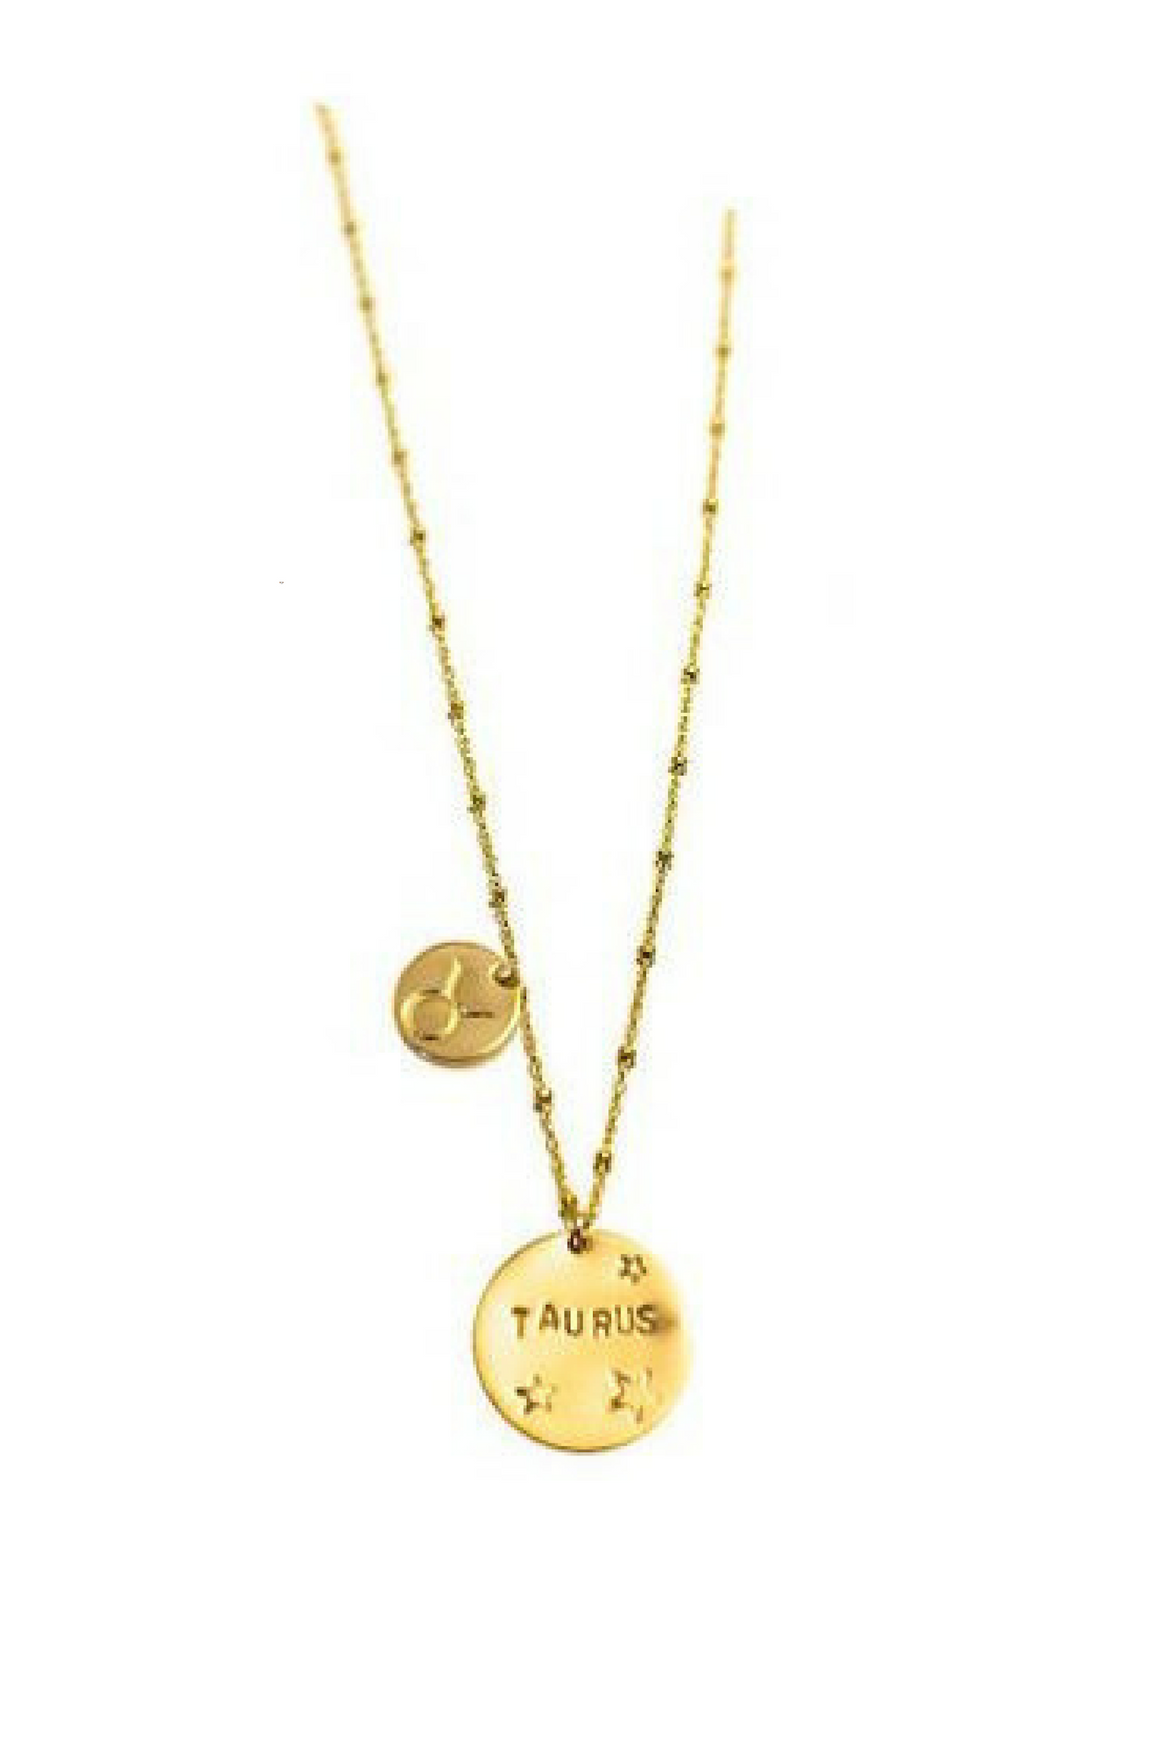 zodiac sign, horoscope, gold, necklace, gold necklace, layered, custom, engraved, coin necklace, beaded chain, paradigm jewelry